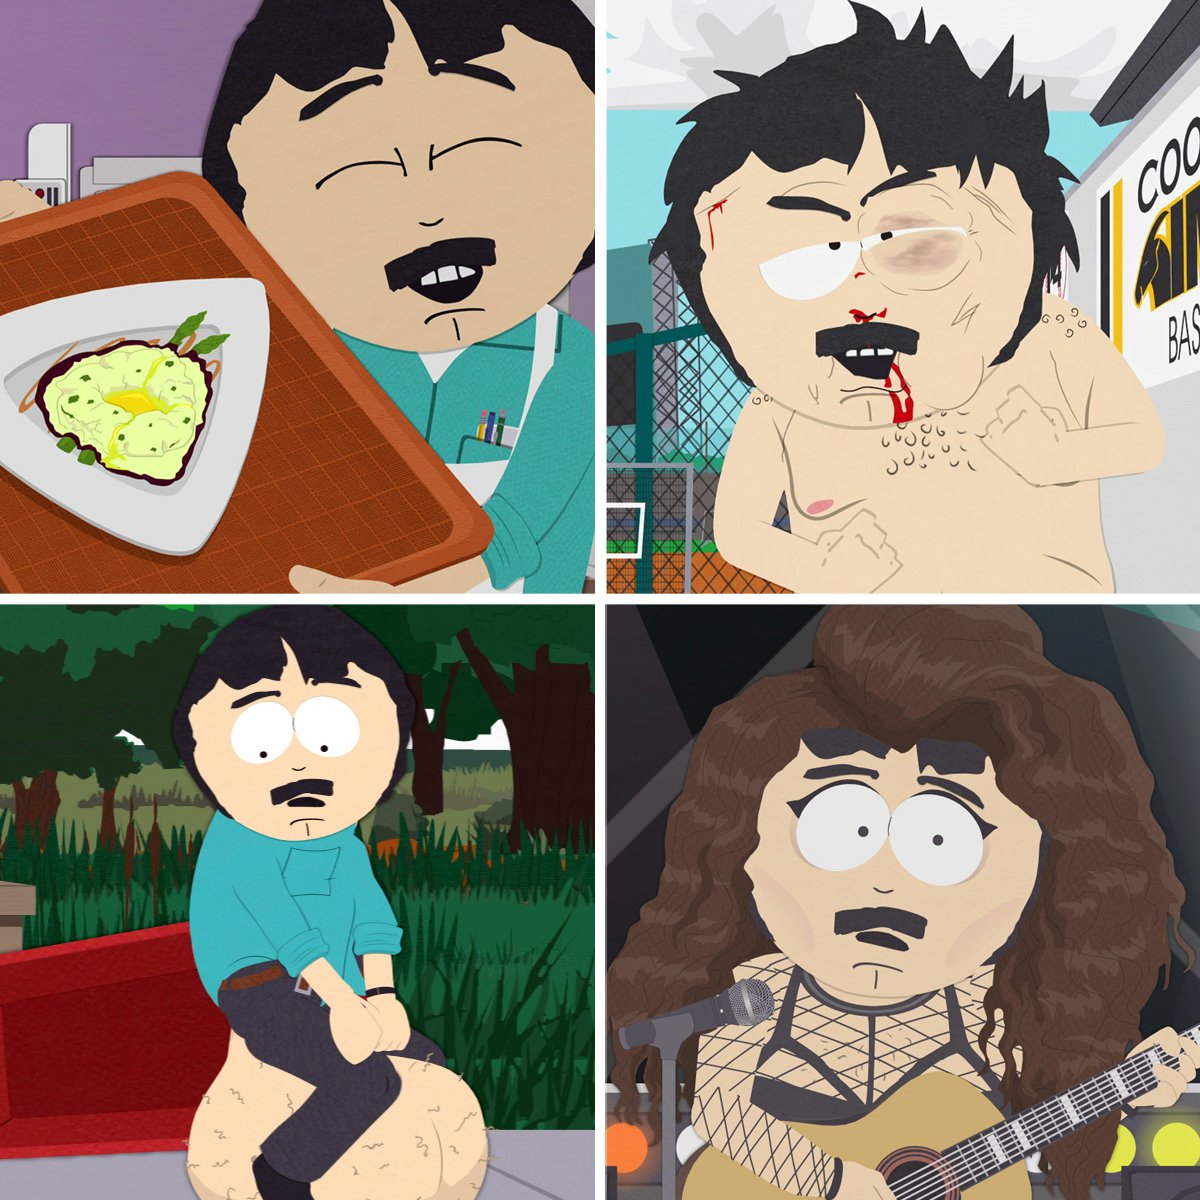 mangungutya on twitter southpark randymarsh jerking off in the